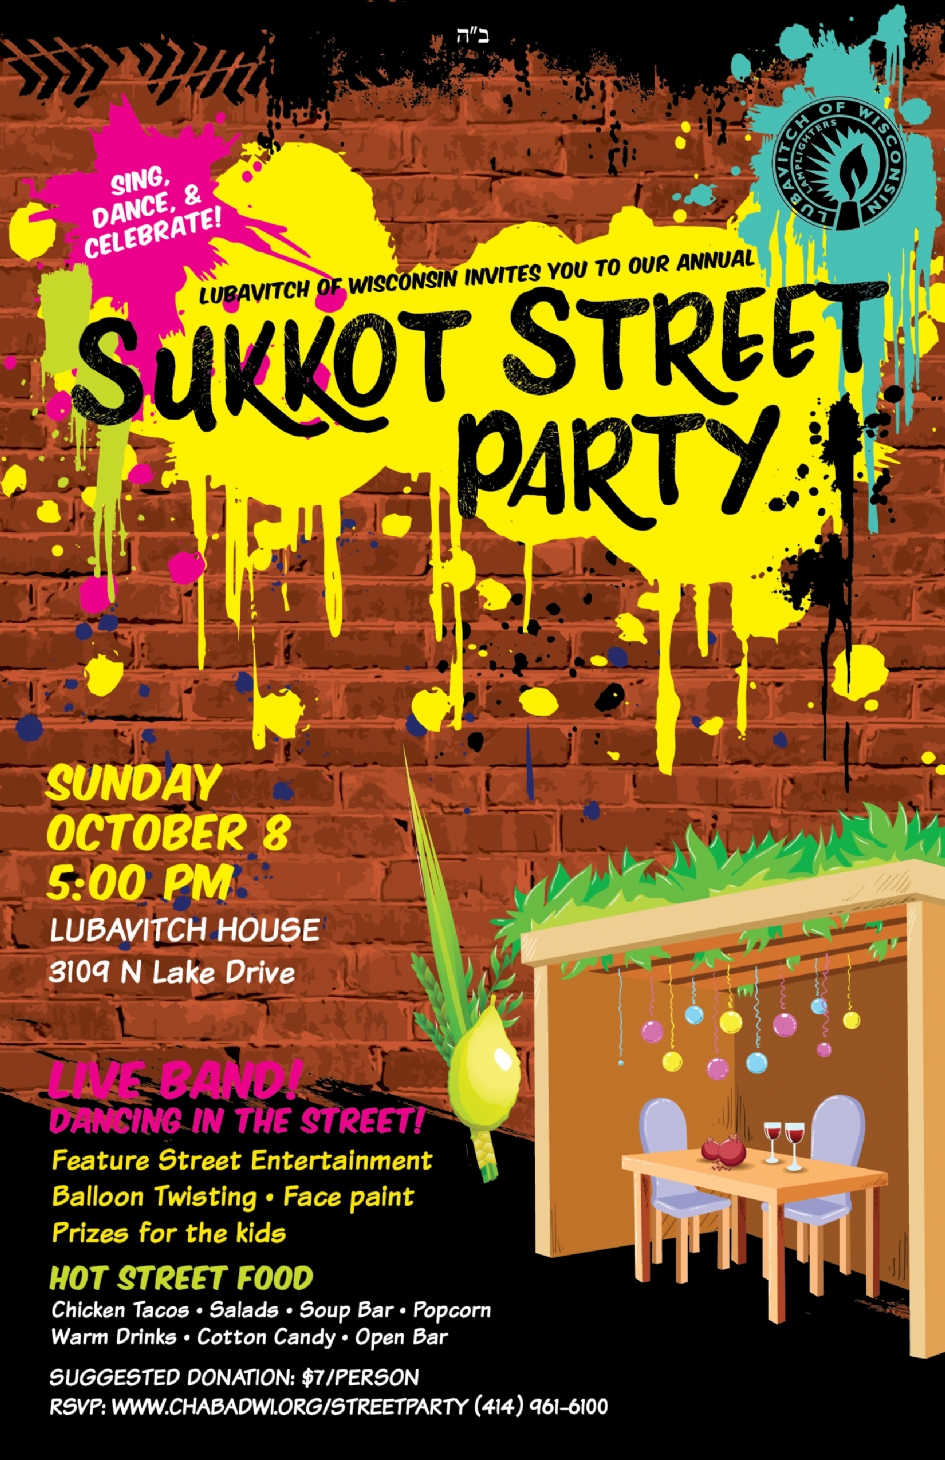 Sukkot Street Party 2017 Sunday October 8th Chabad Lubavitch Of